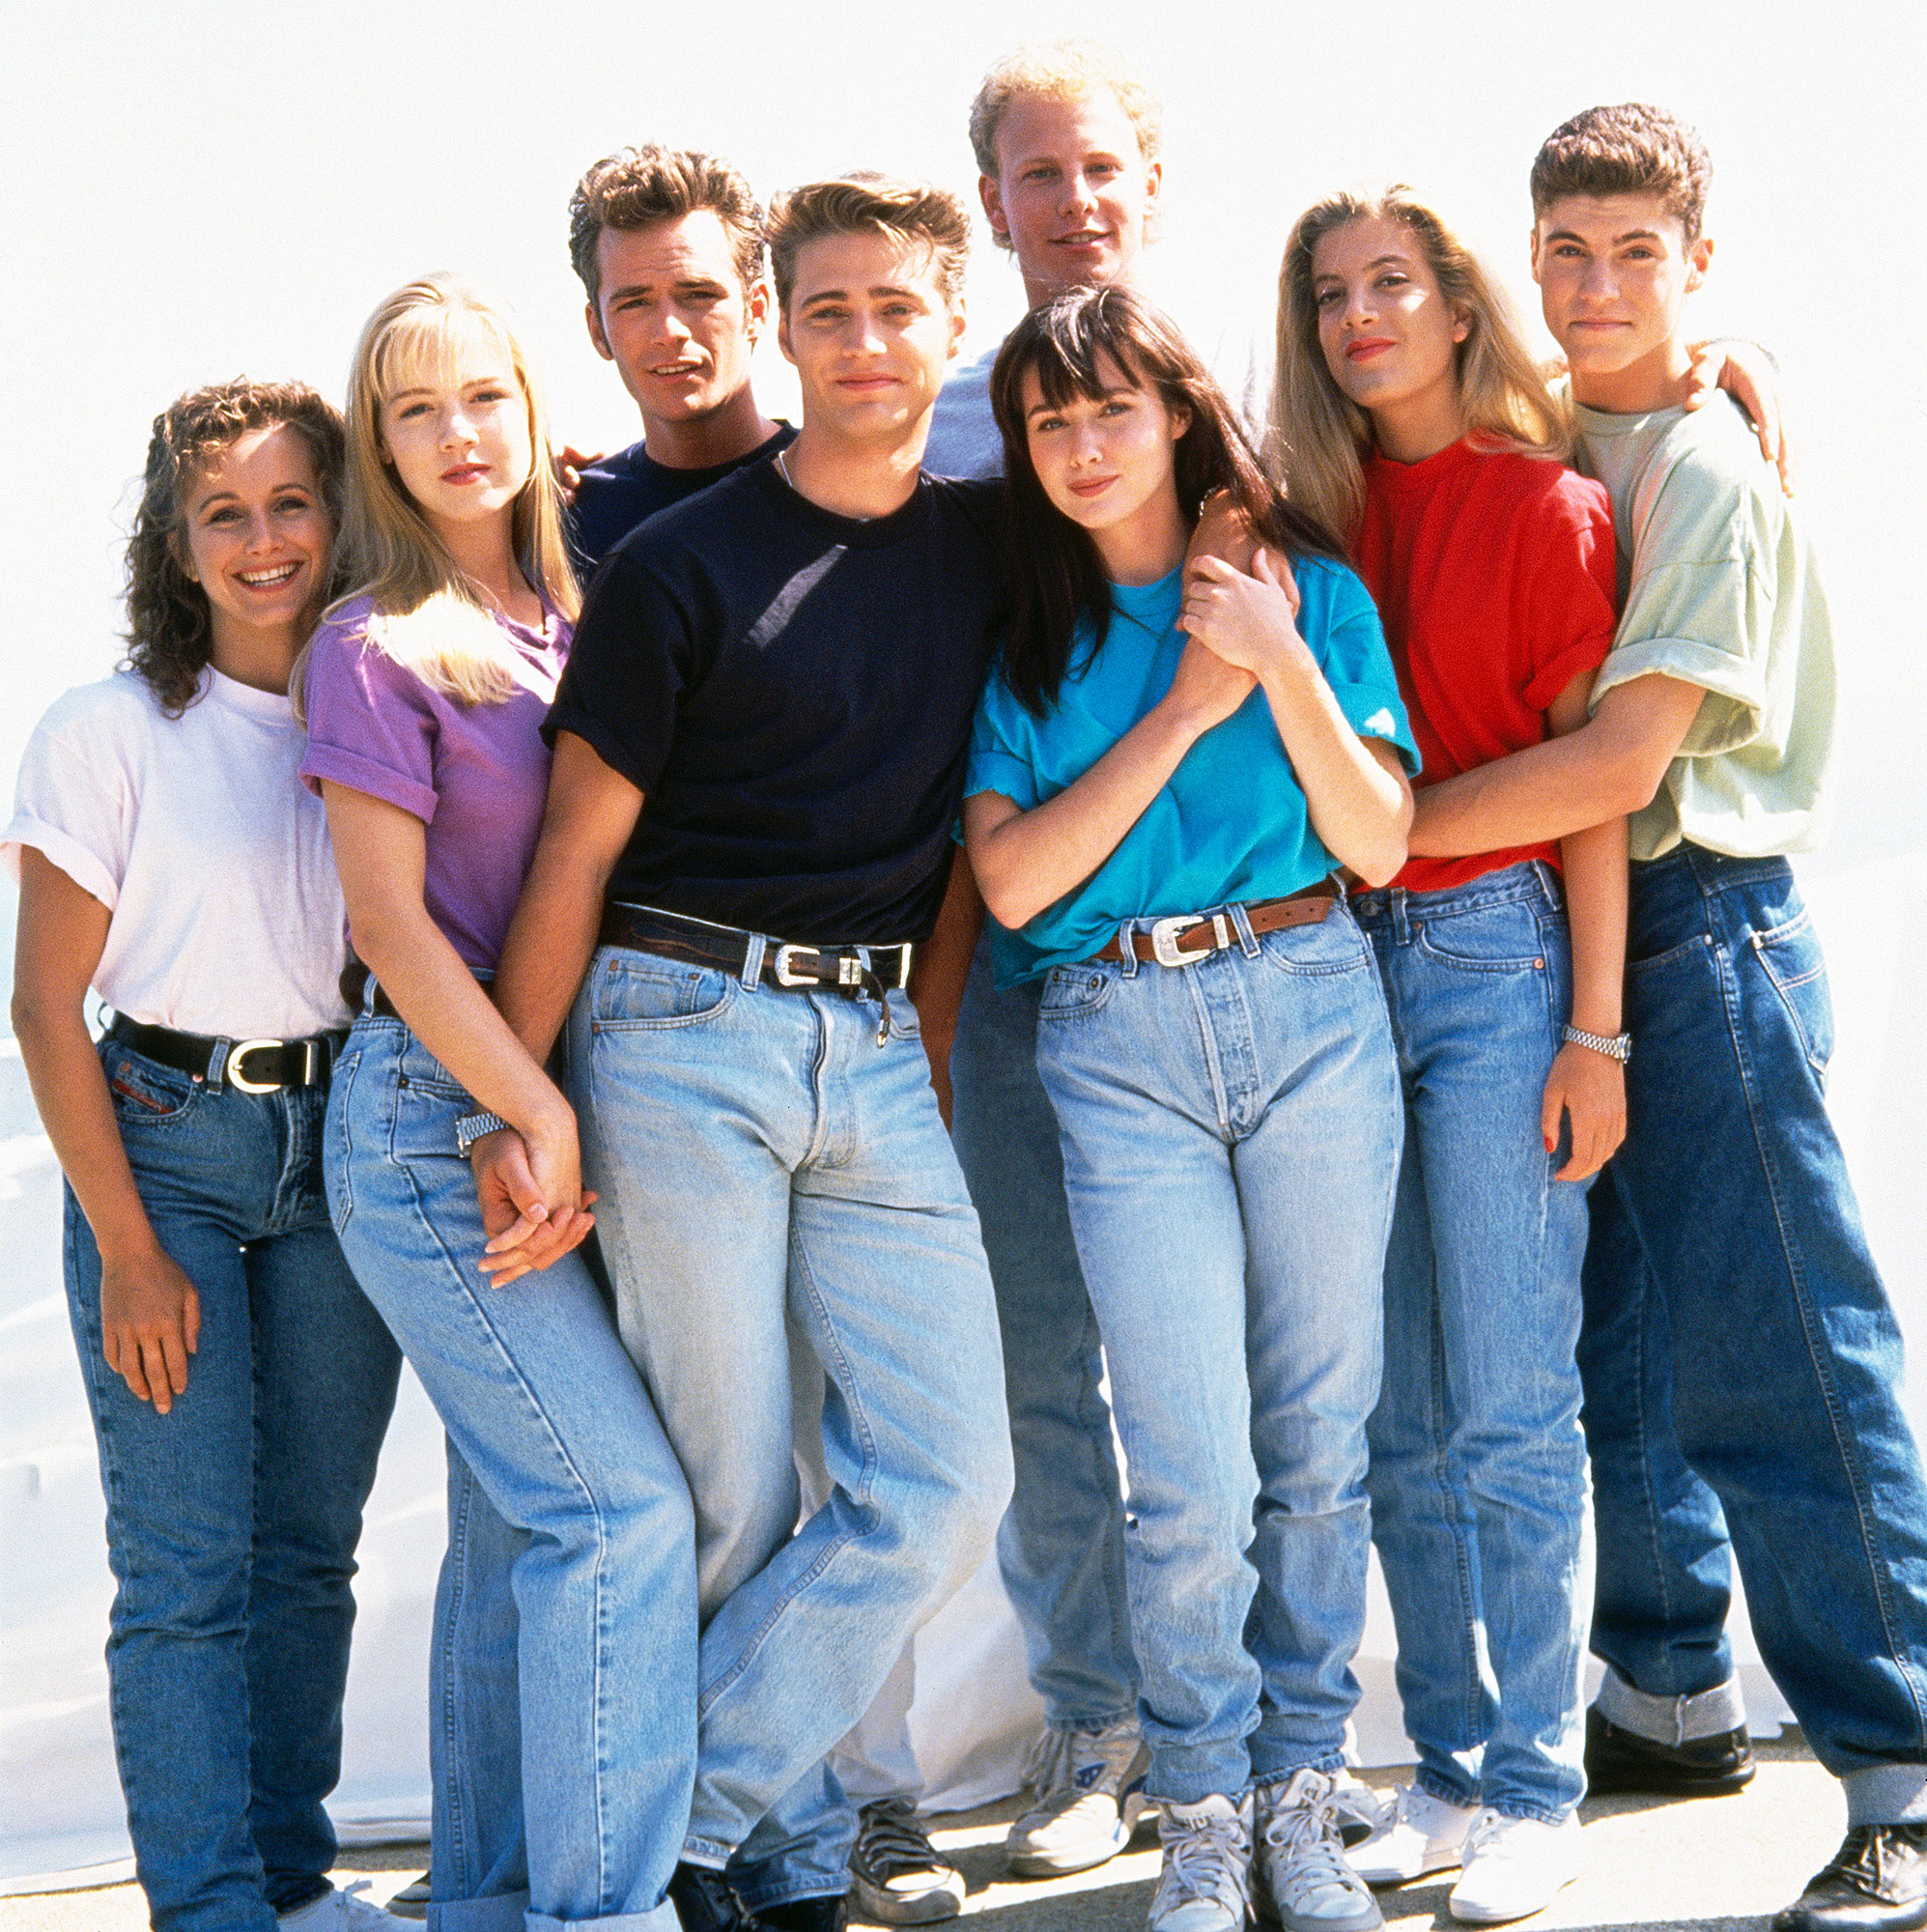 Beverly Hills 90210 Cast 1991 - Gabrielle Carteris, Jennie Garth, Luke Perry, Jason Priestley, Ian Ziering, Shannen Doherty, Tori Spelling and Brian Austin Green on 'Beverly Hills, 90210' in 1991.